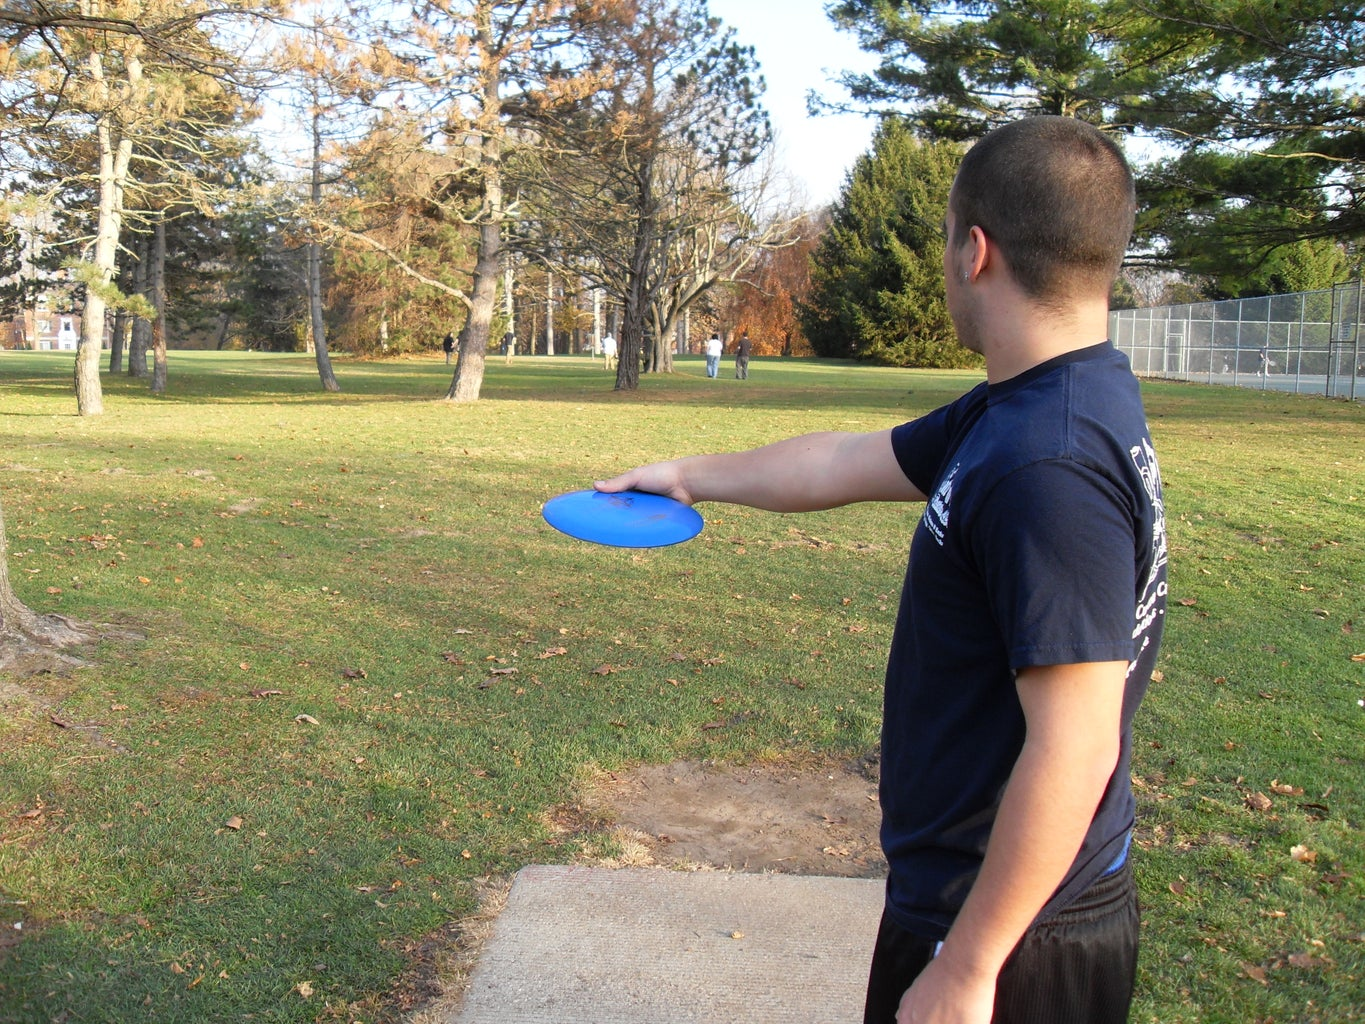 Throwing With Grip #1